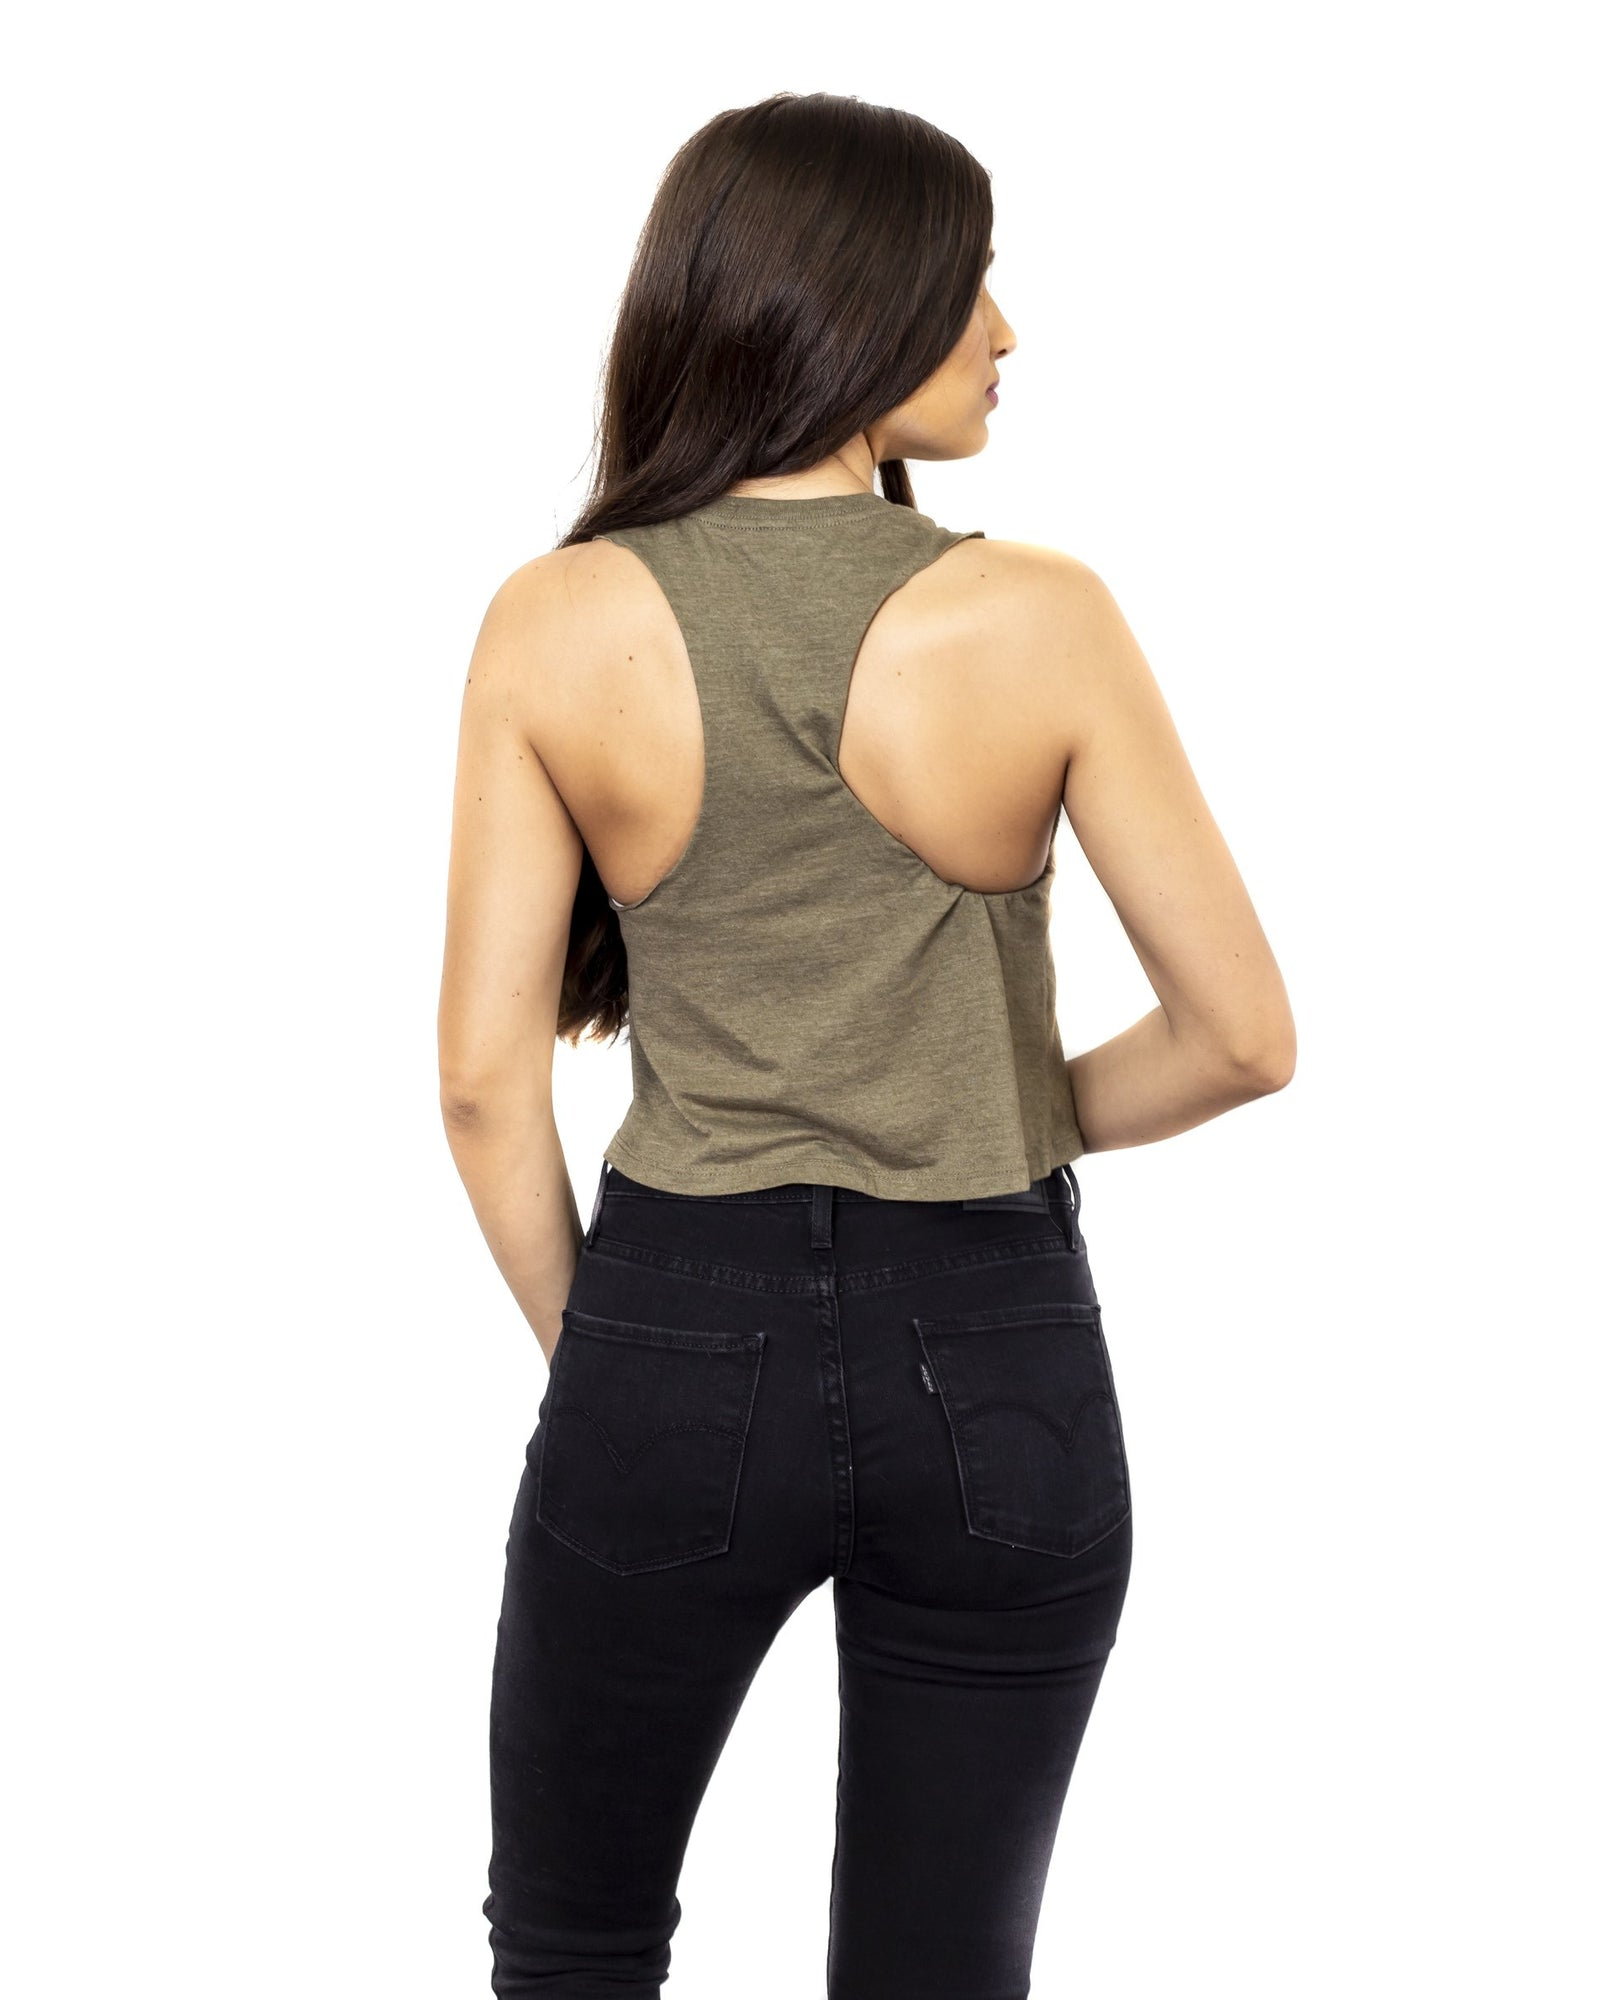 Dirt Alliance Racer Crop Top - Military Green